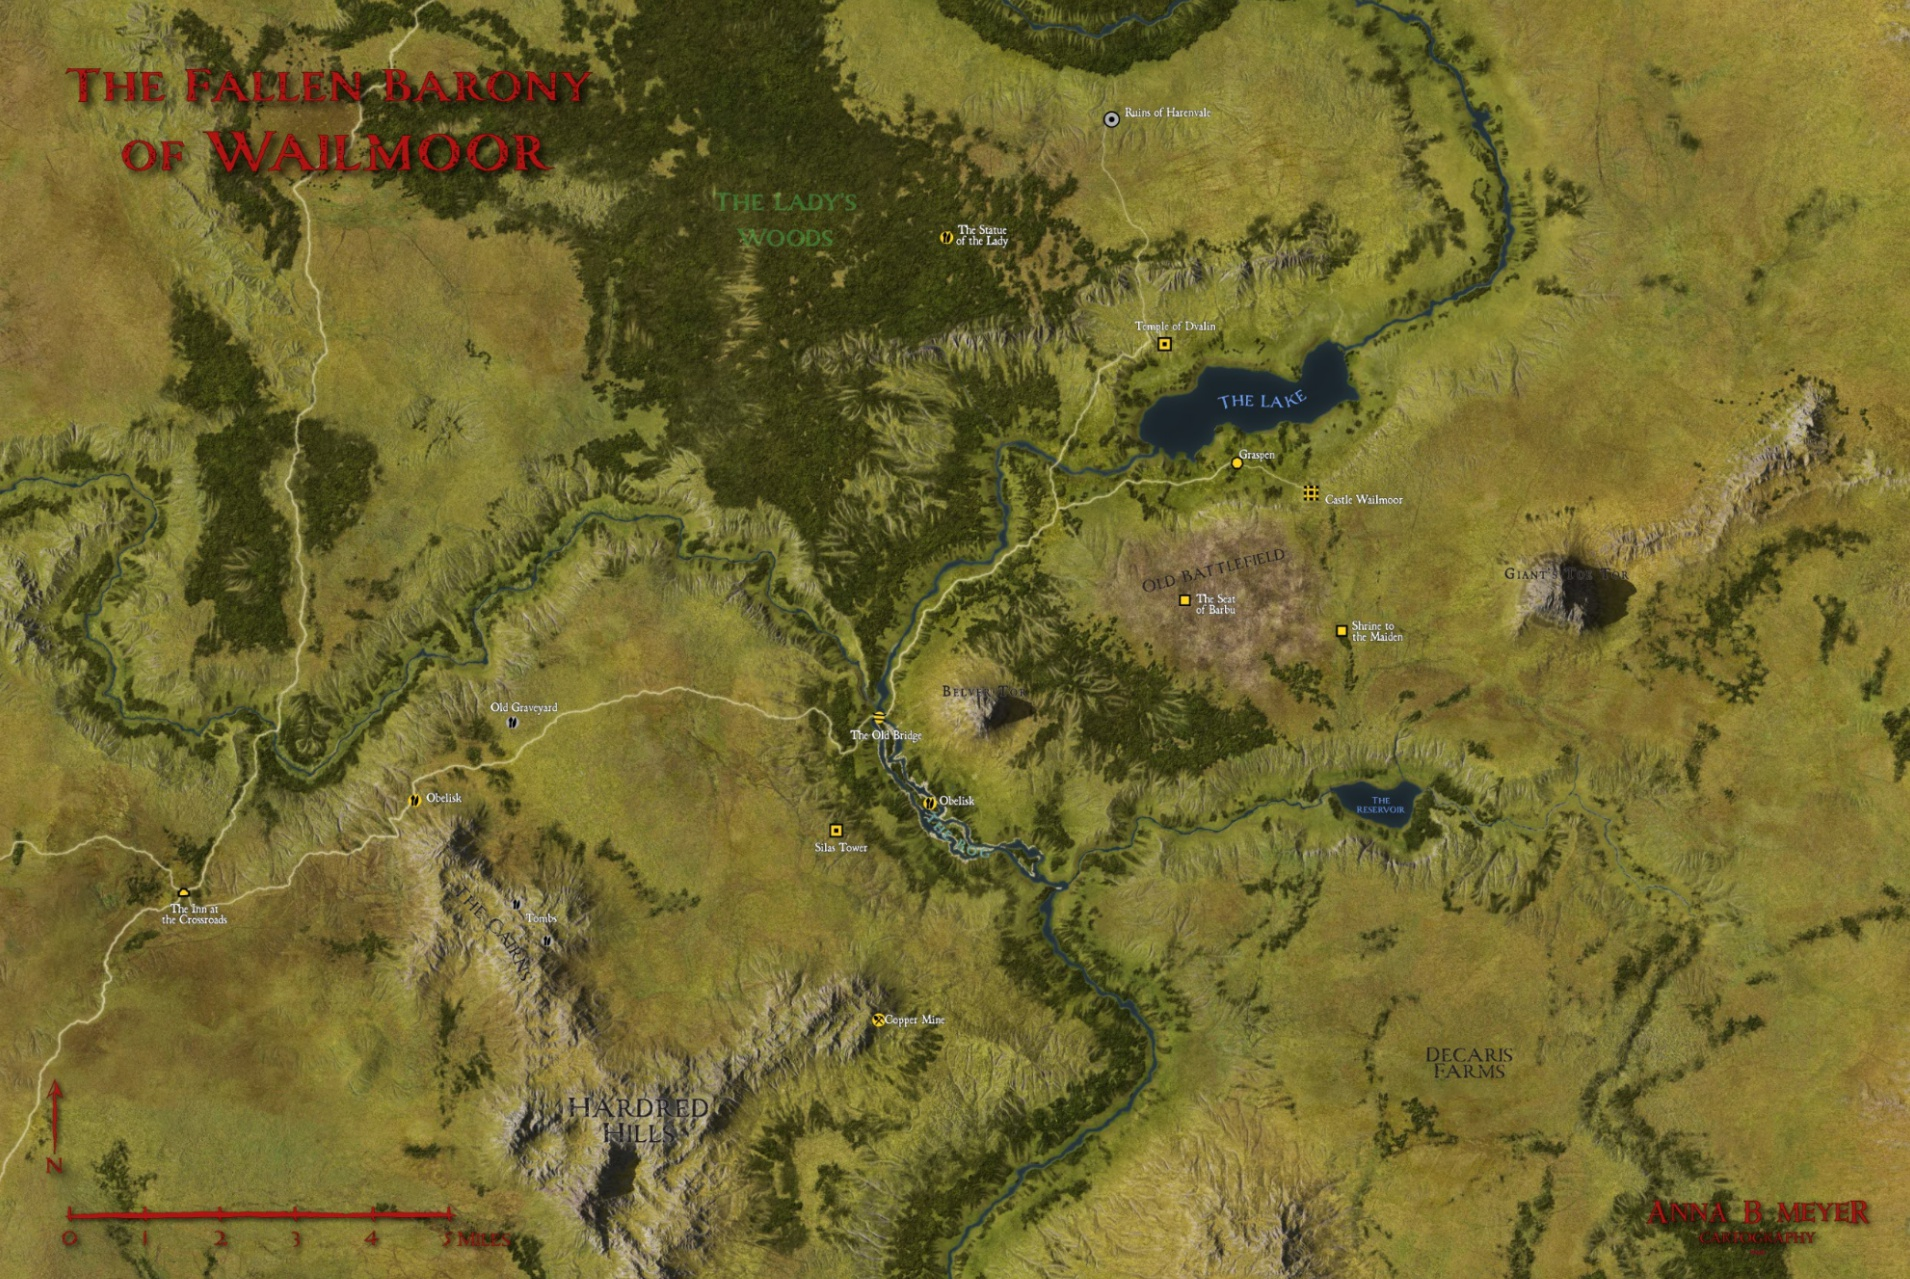 Curse of the Lost Memories Digital Map Pack – Griffon Lore Games on